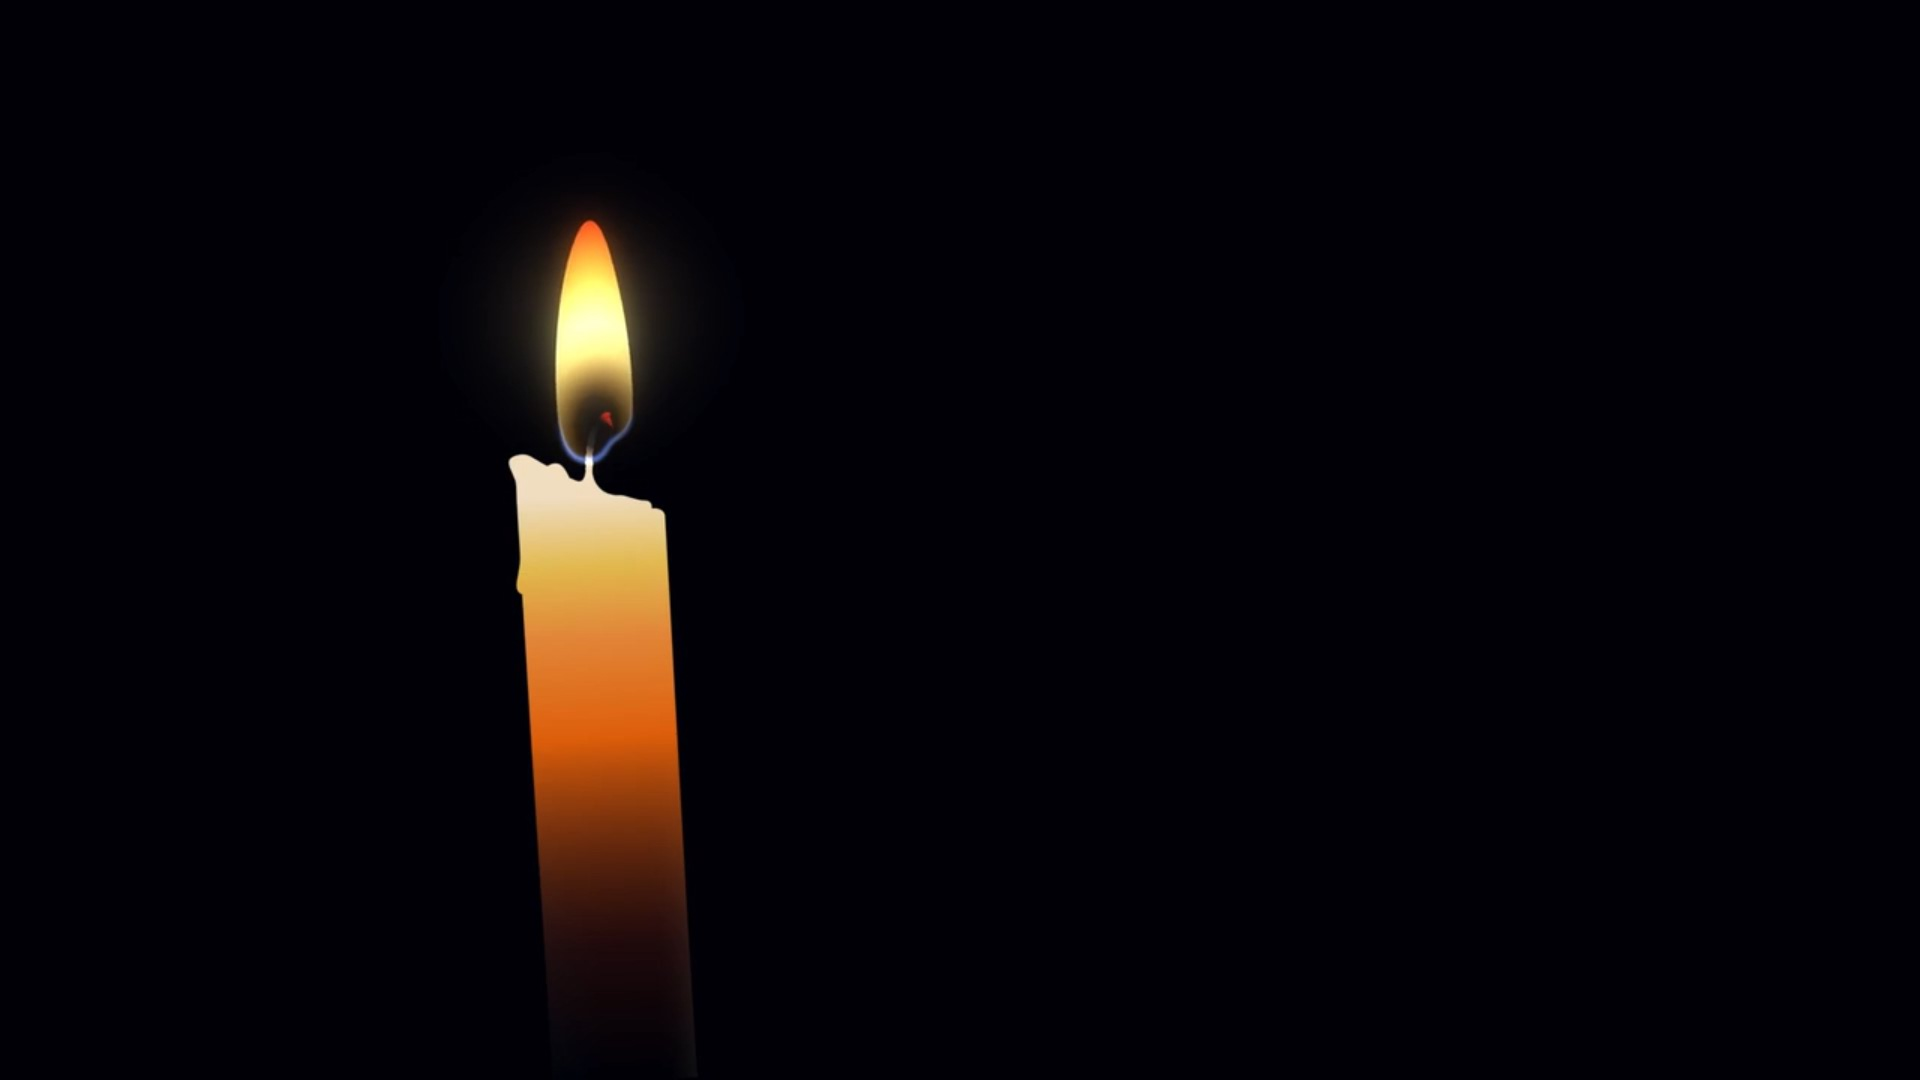 Candles clipart animated. Blow off candle animation